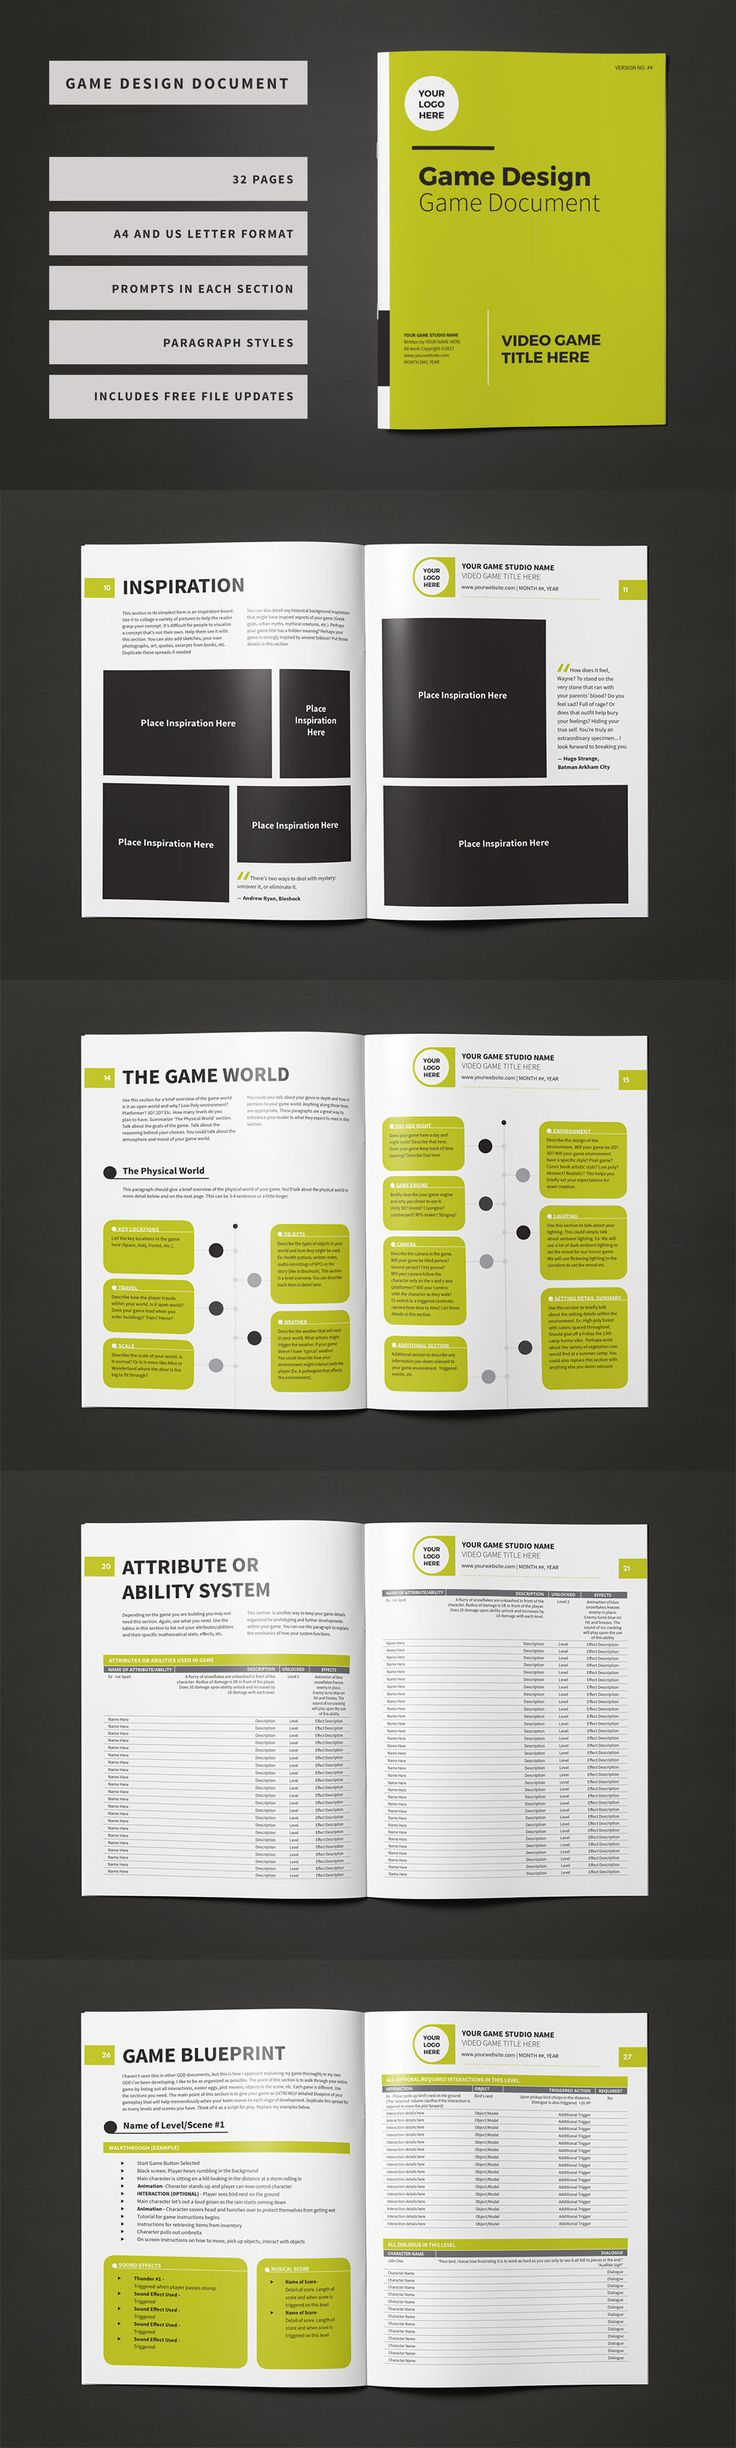 Best 25+ Game design document template ideas on Pinterest ...